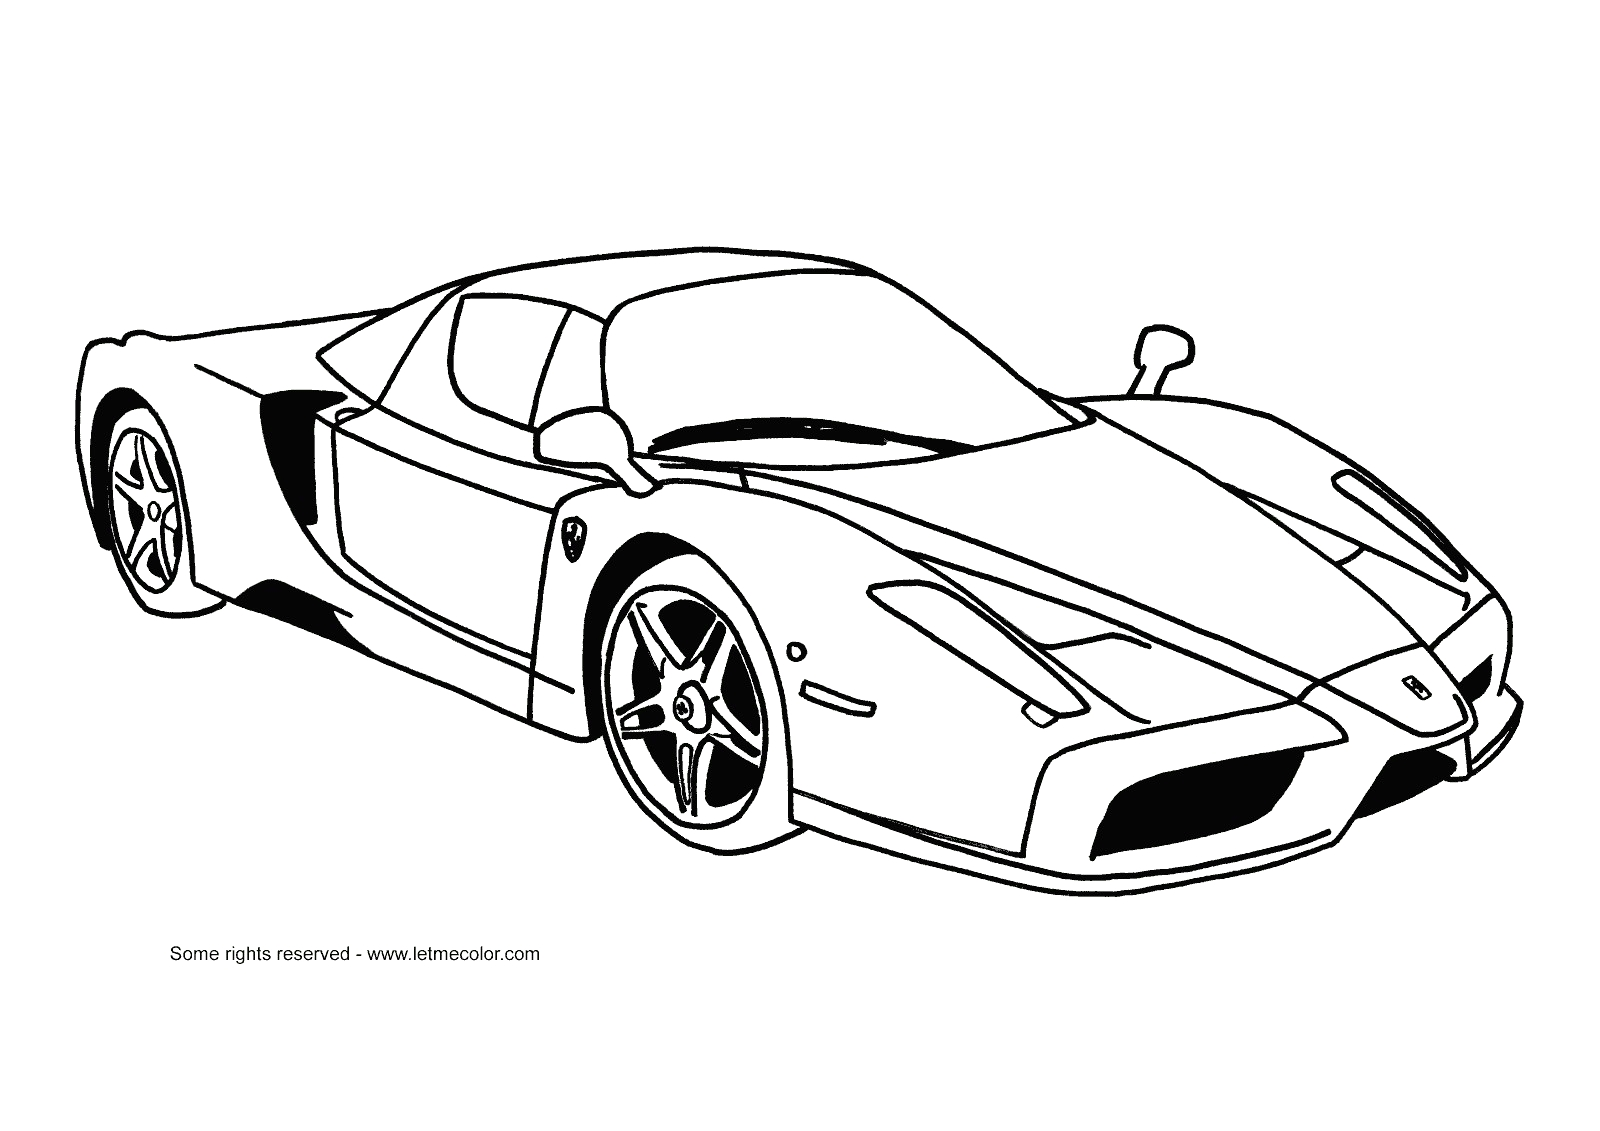 coloring pages ferrari cars ferrari car coloring pages at getdrawings free download ferrari coloring cars pages